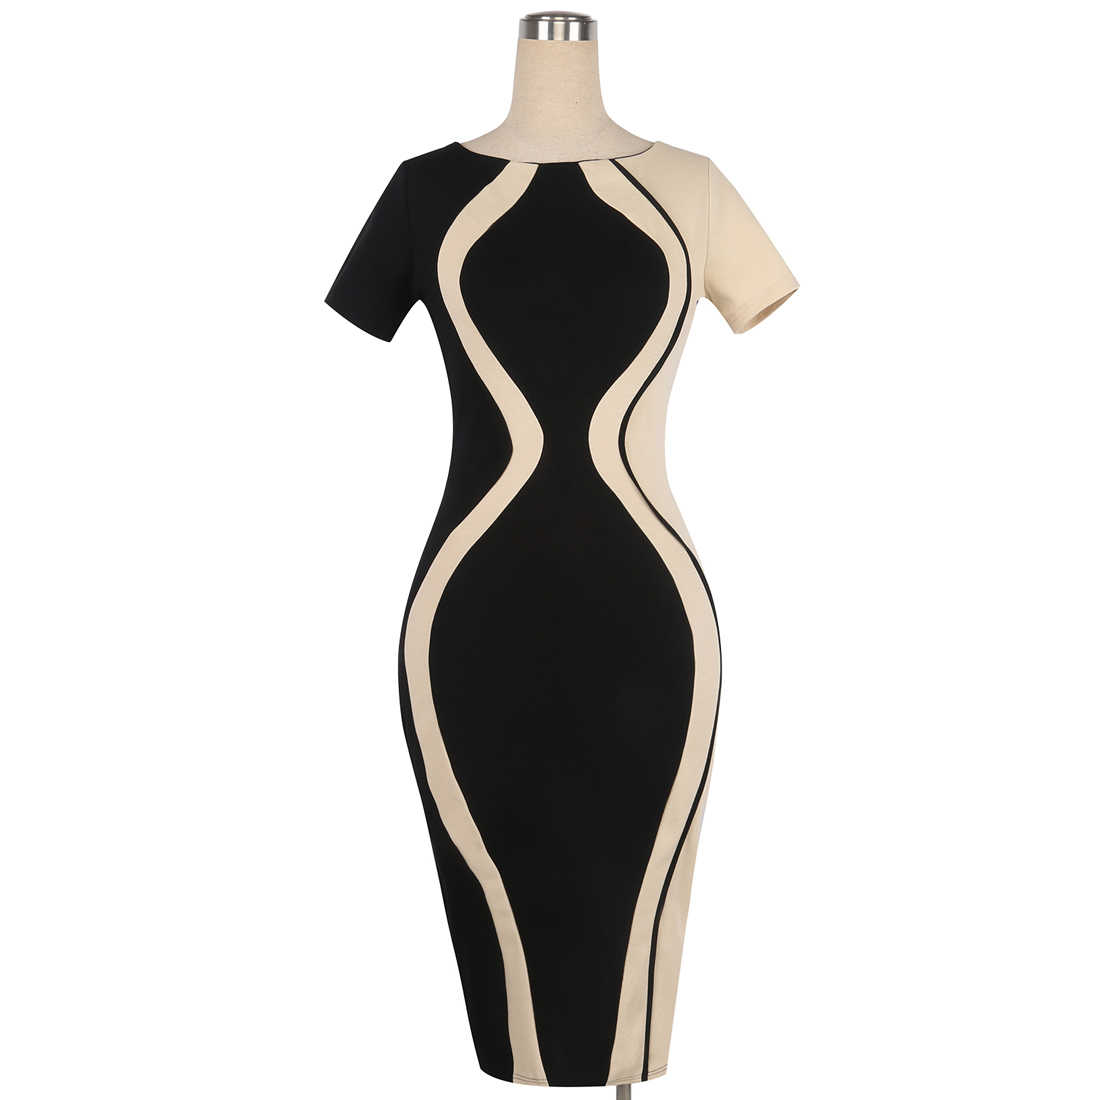 3a1d8a6e2d567 Oxiuly Womens Elegant Optical Illusion Color Block Contrast Patchwork  O-Neck Bodycon Work Casual Ladies Office Wear Pencil Dress